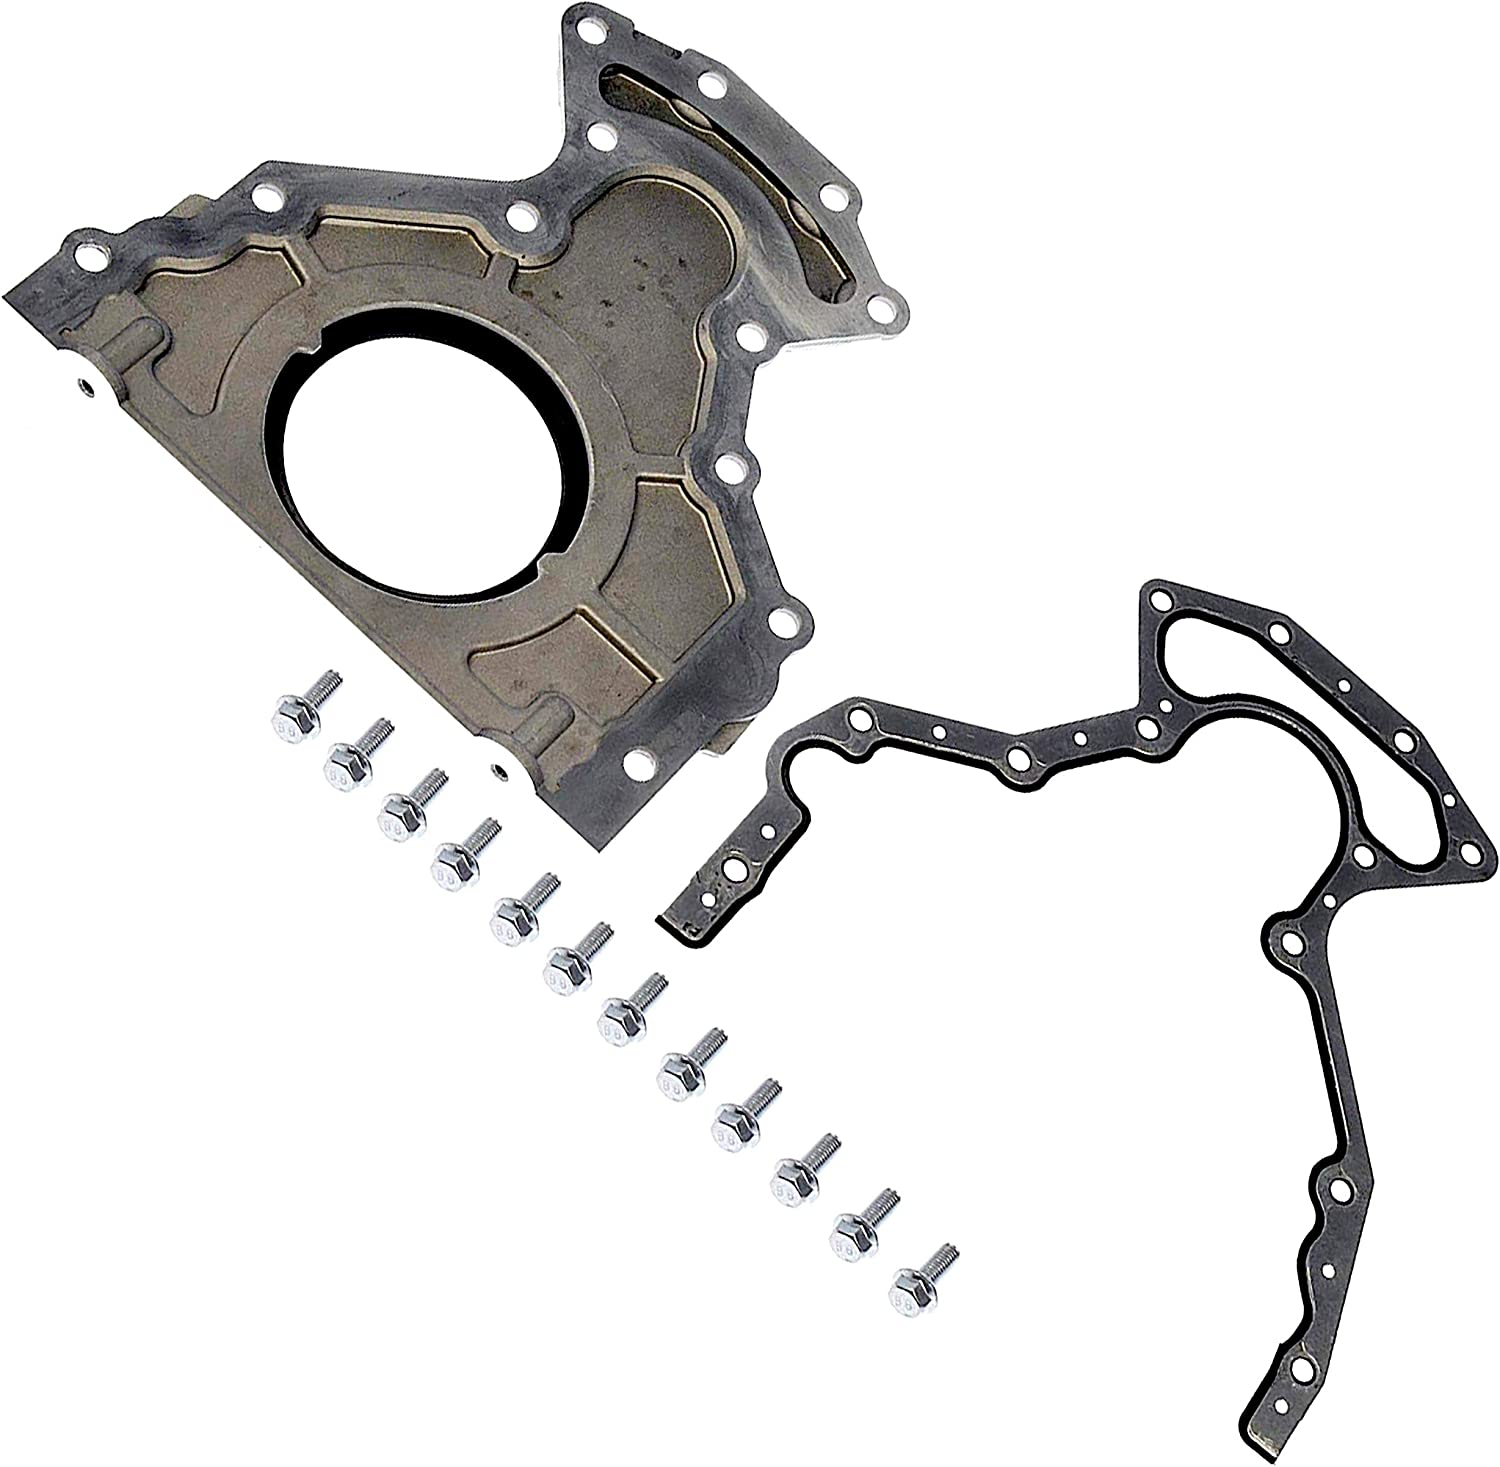 Bolt Kit Gasket APDTY 746629 Crankshaft Rear Main Seal With Housing Cover Replaces 12639250//12633579